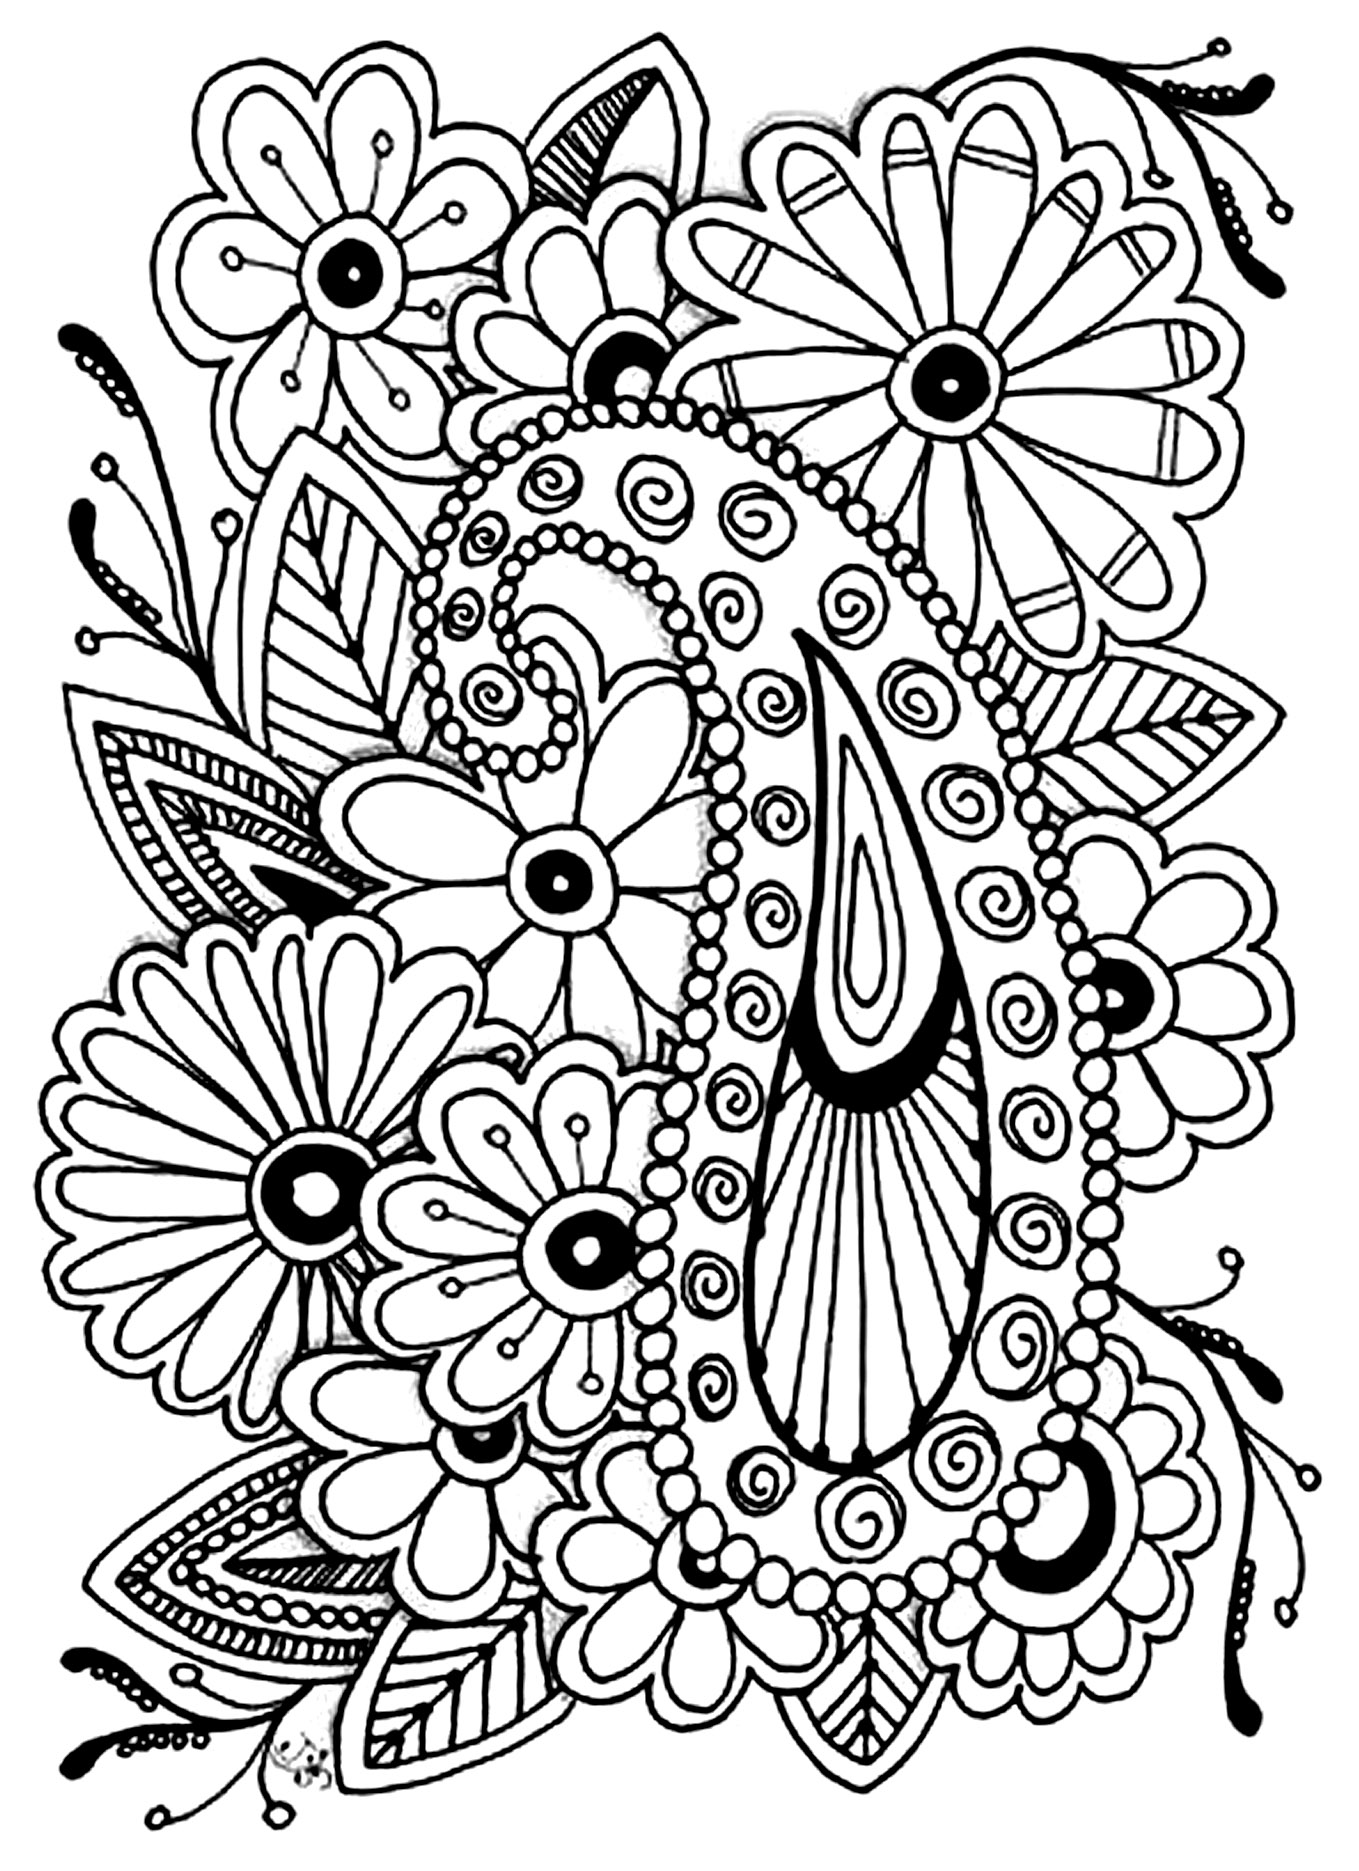 adults coloring pages free adult floral coloring page the graphics fairy pages adults coloring